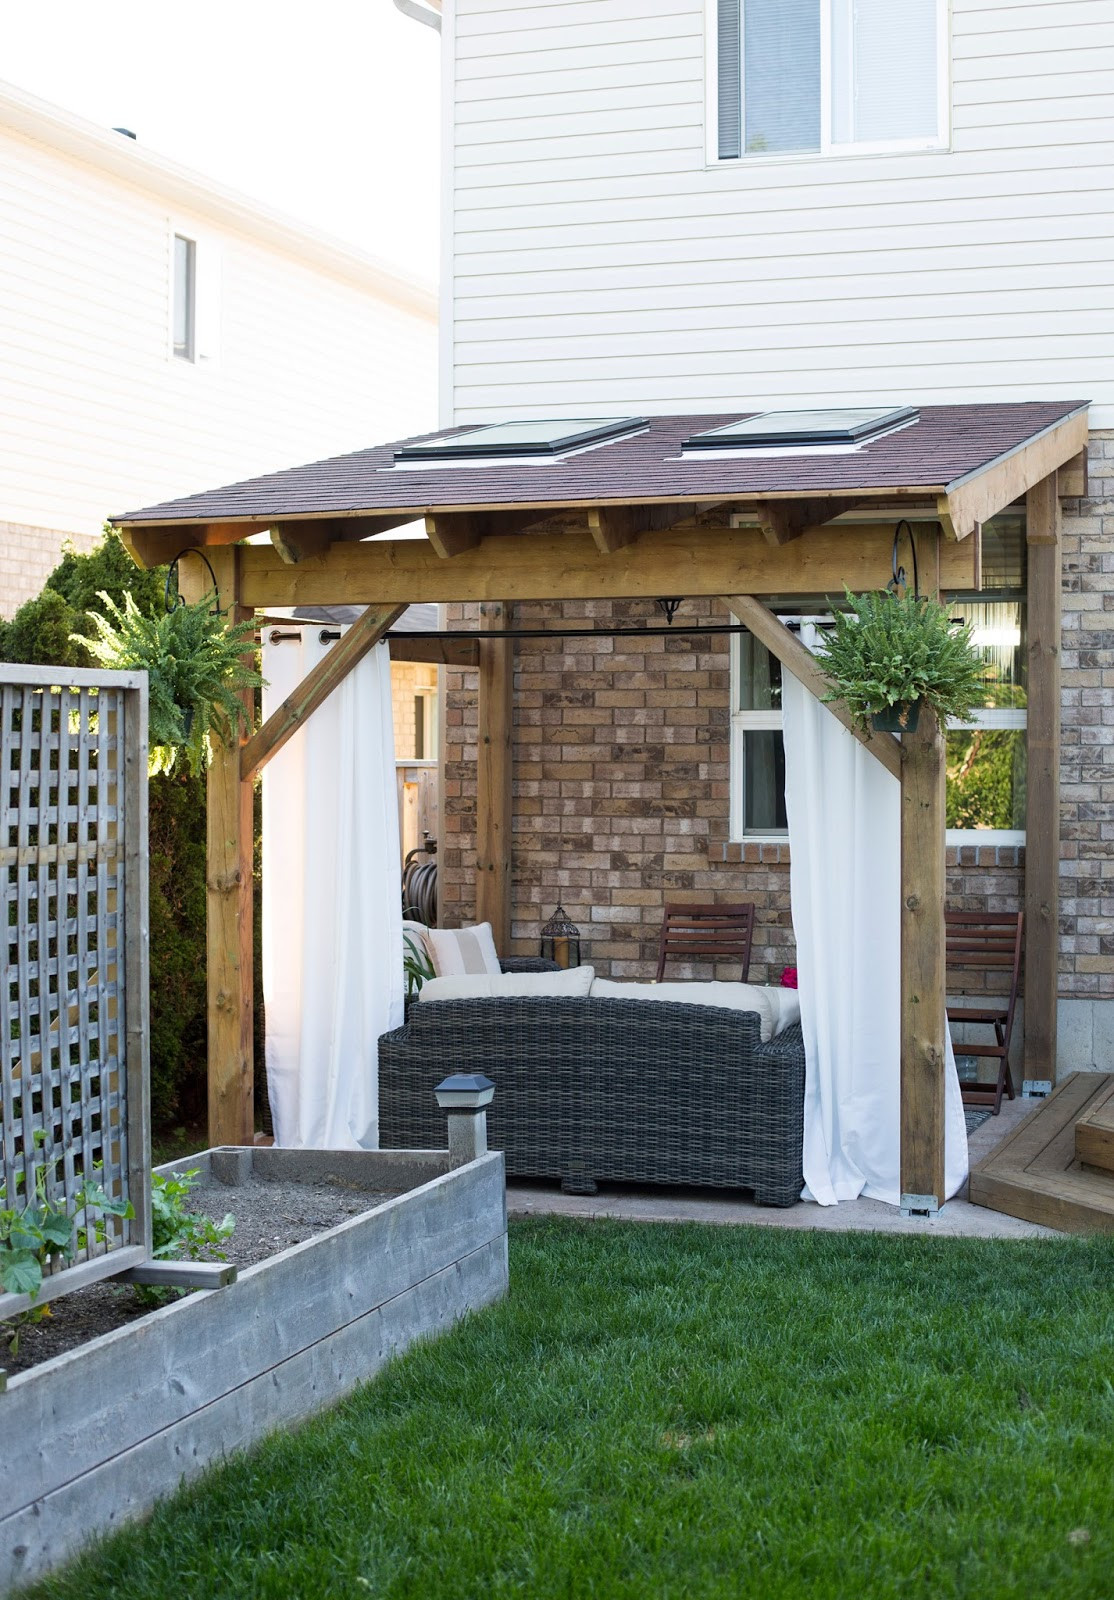 Best ideas about DIY Covered Patio Plans . Save or Pin HDBlogSquad How to Build a Covered Patio Brittany Stager Now.